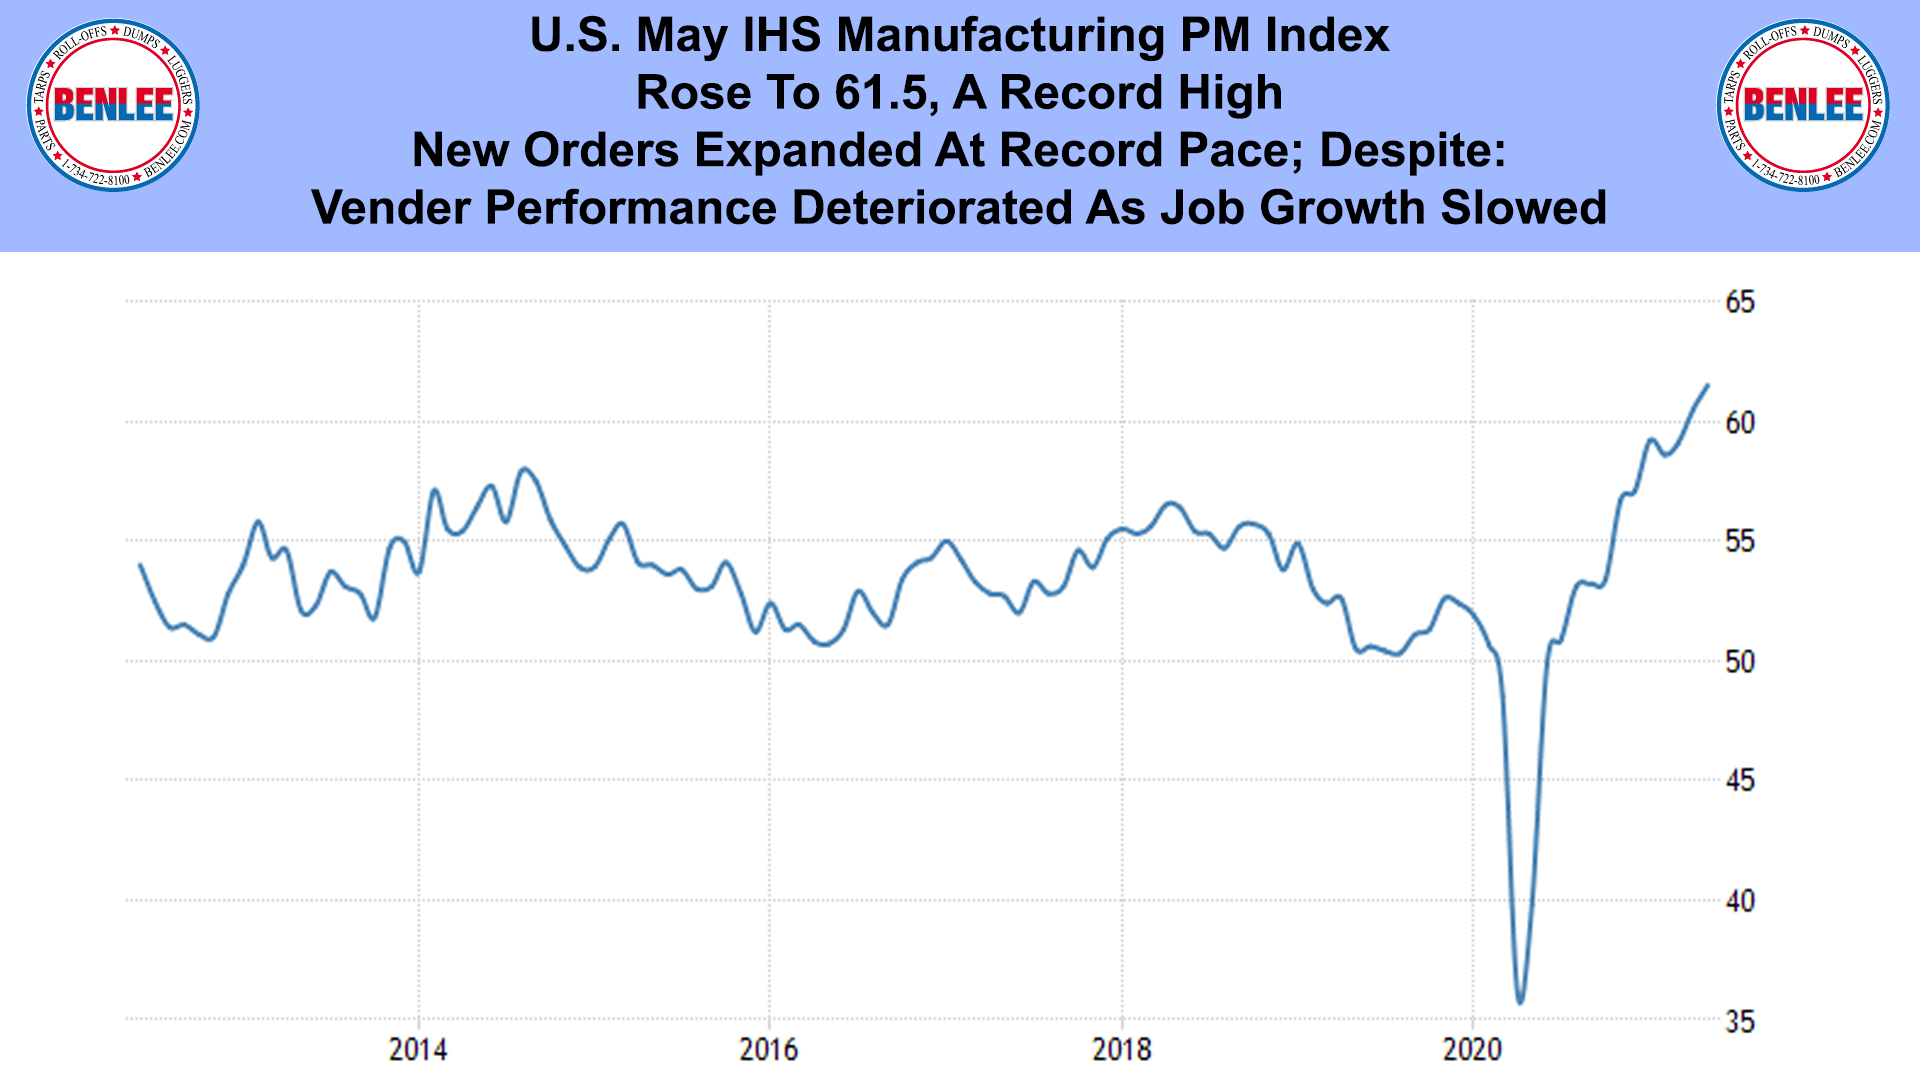 U.S. May IHS Manufacturing PM Index